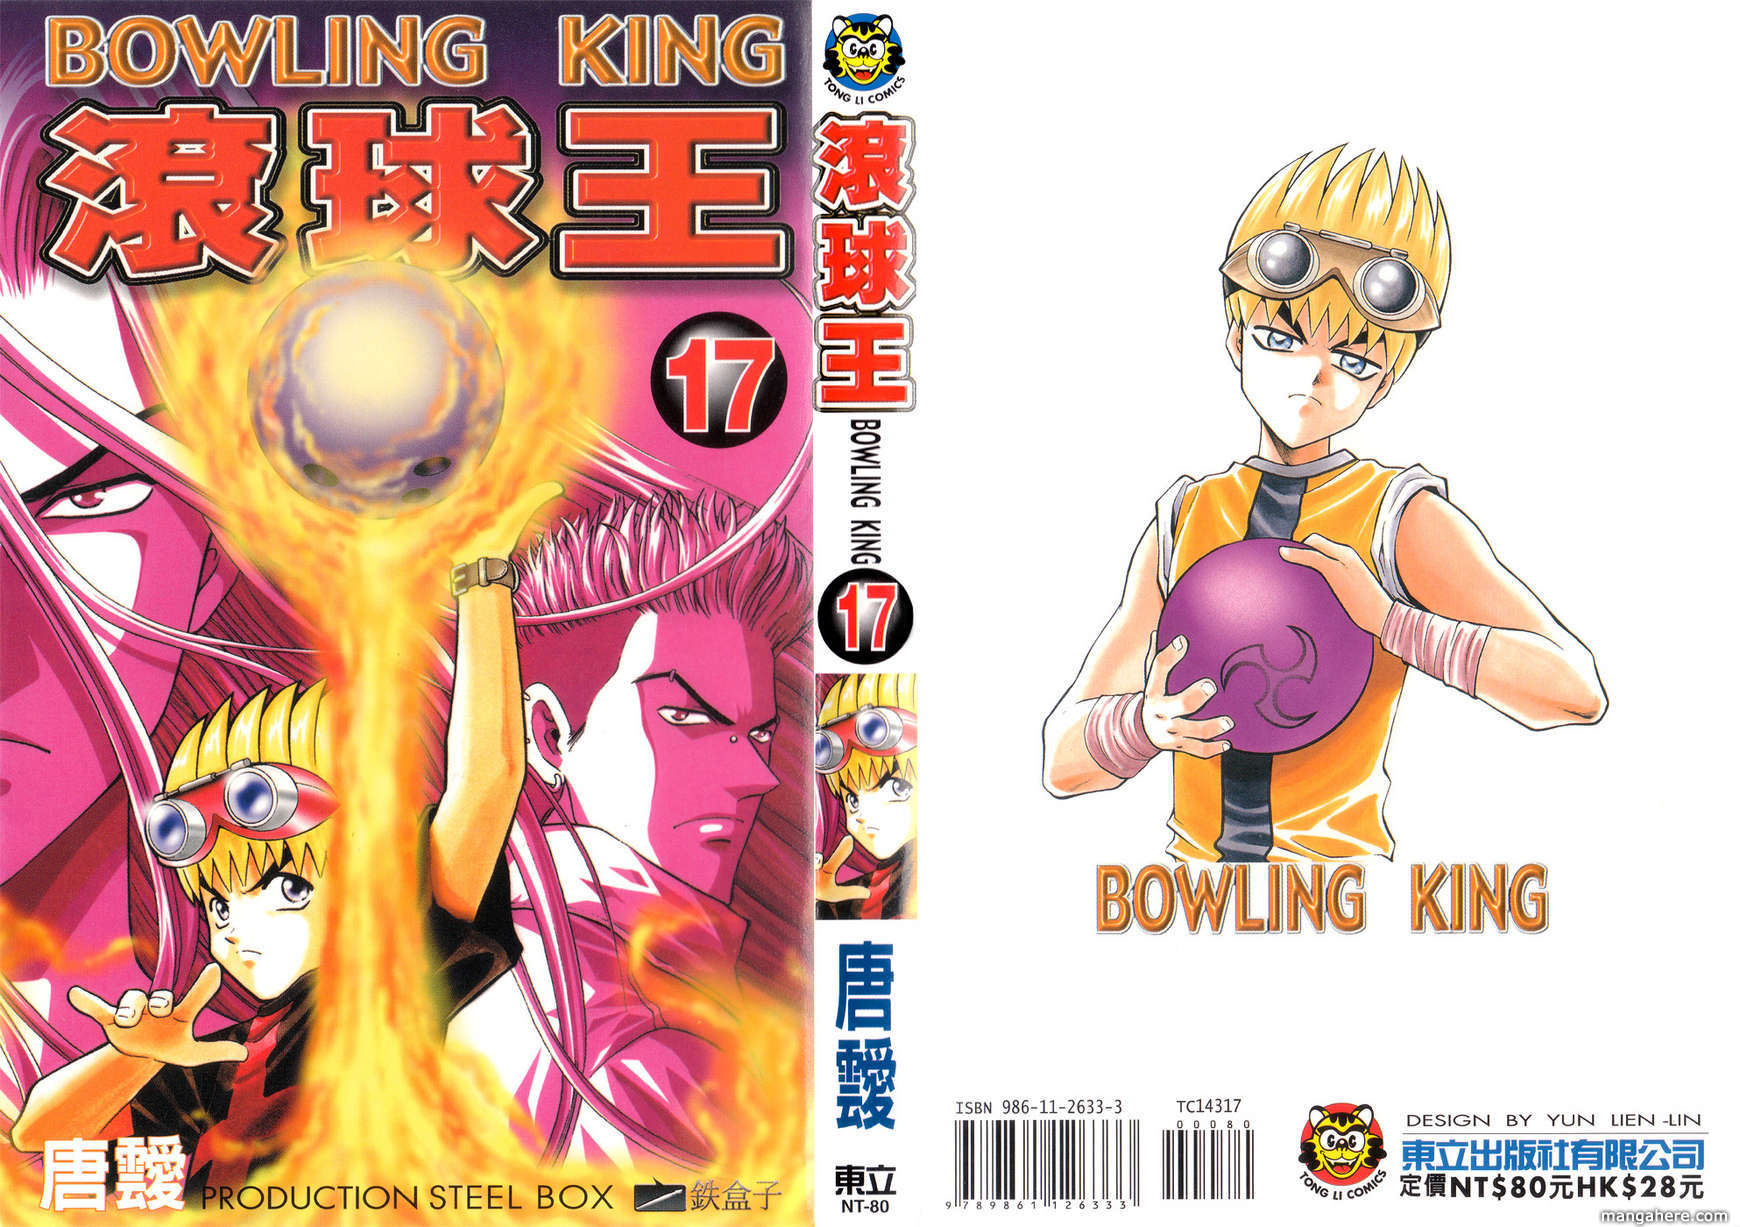 Bowling King 166 Page 1